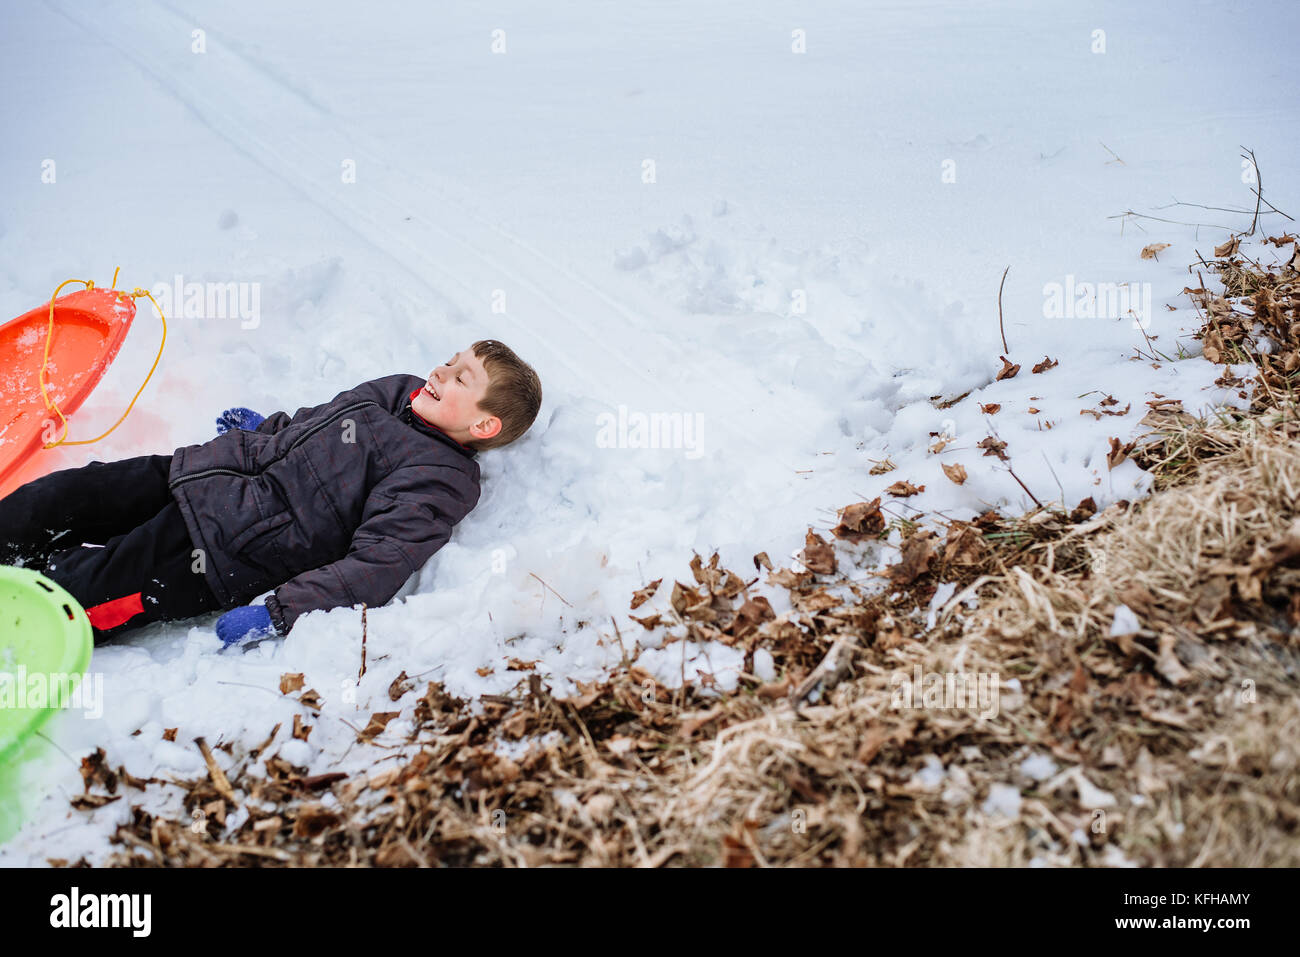 Boy laying in the snow Photo Stock